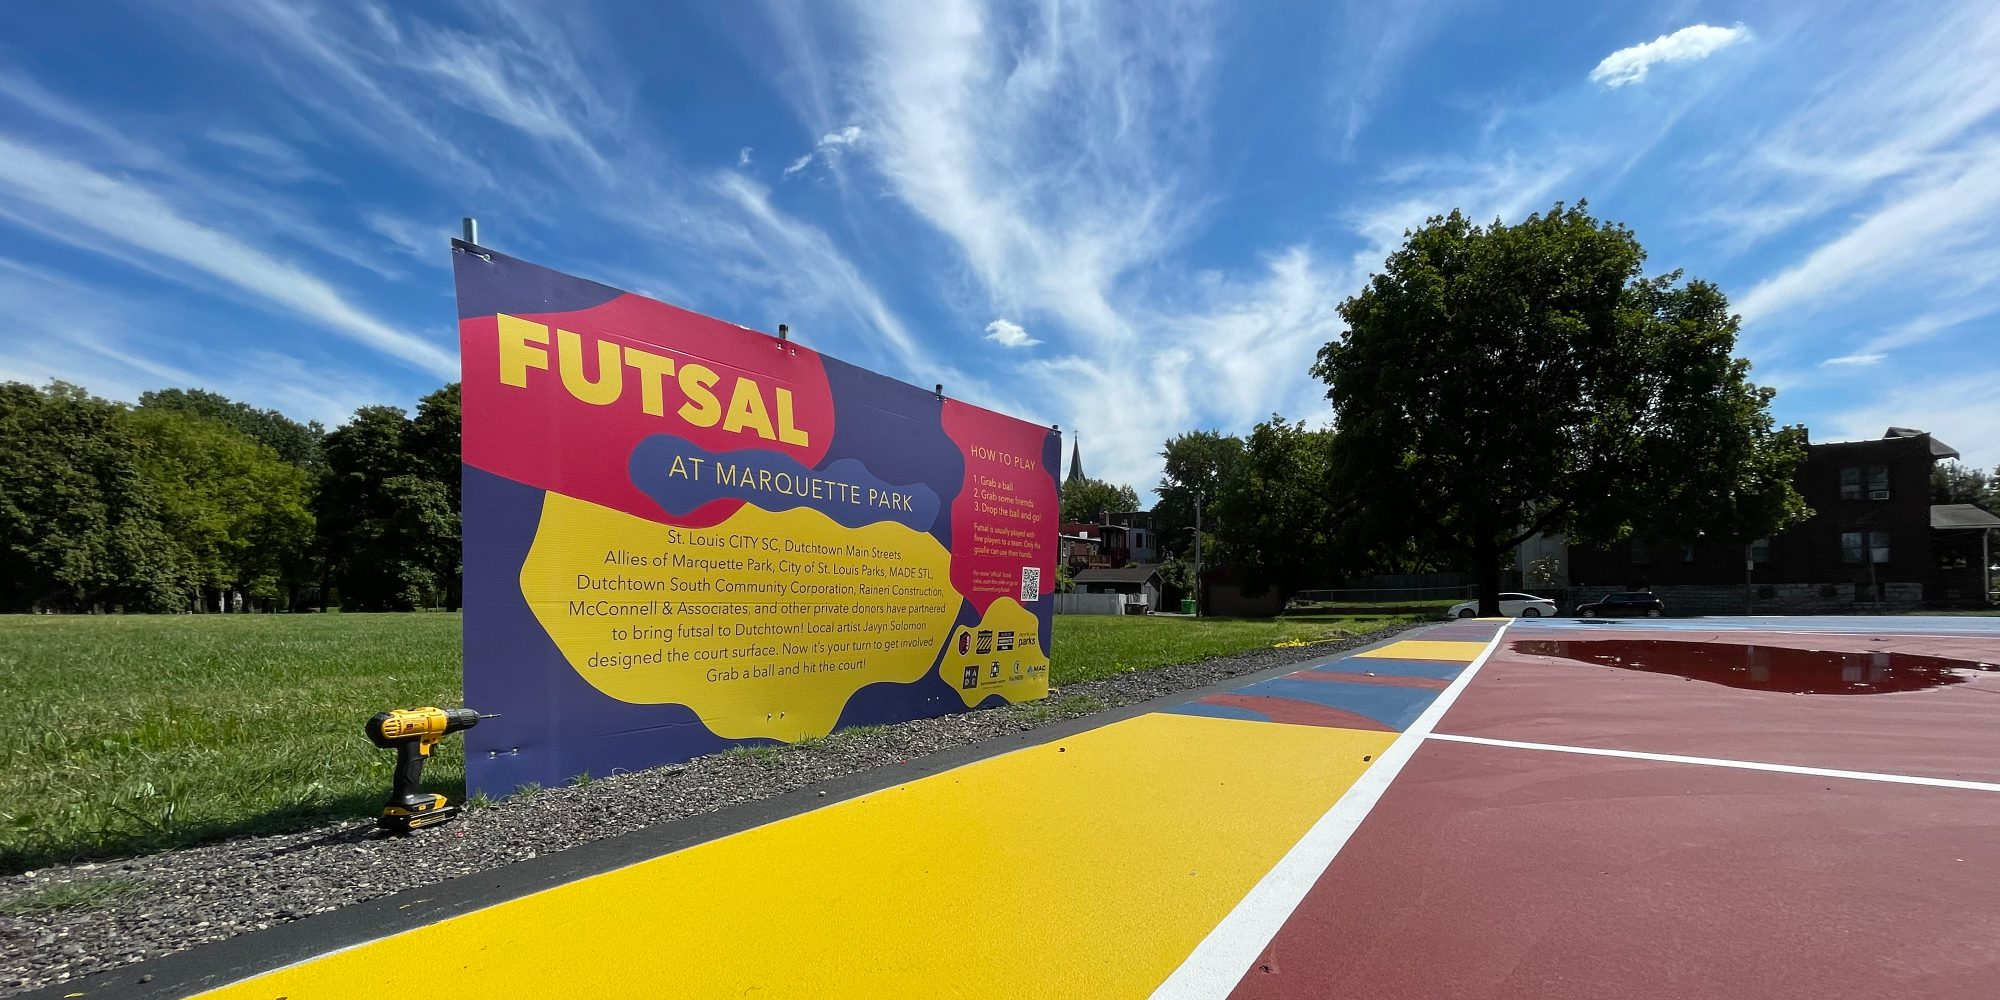 Sign at the Marquette Park futsal court.